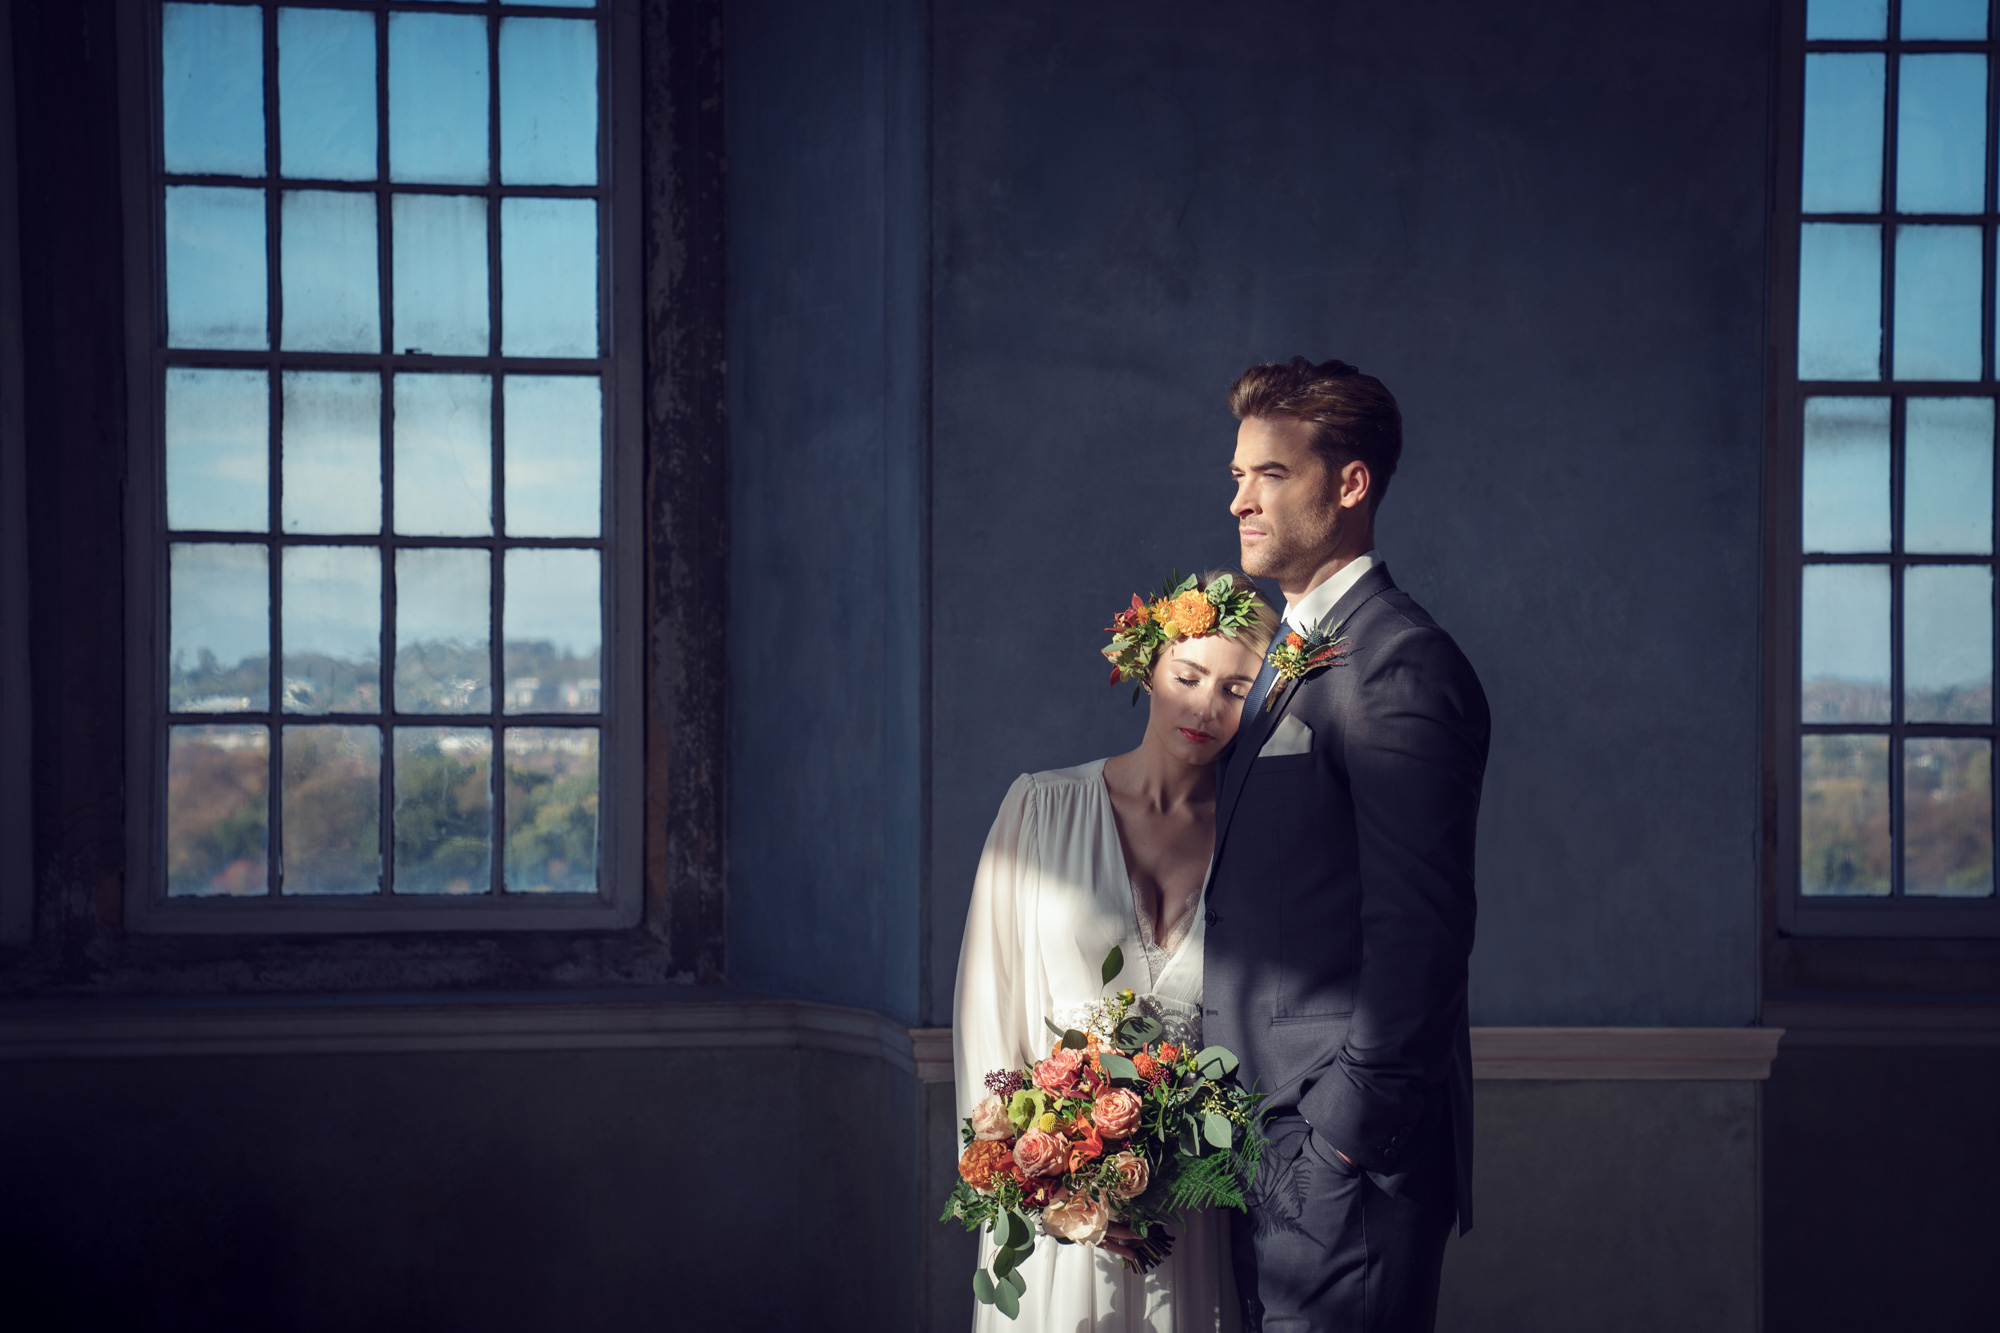 kate-hopewell-smith-sony-alpha-9-bride-and-groom-pose-formally-in-front-of-a-window-after-the-ceremony